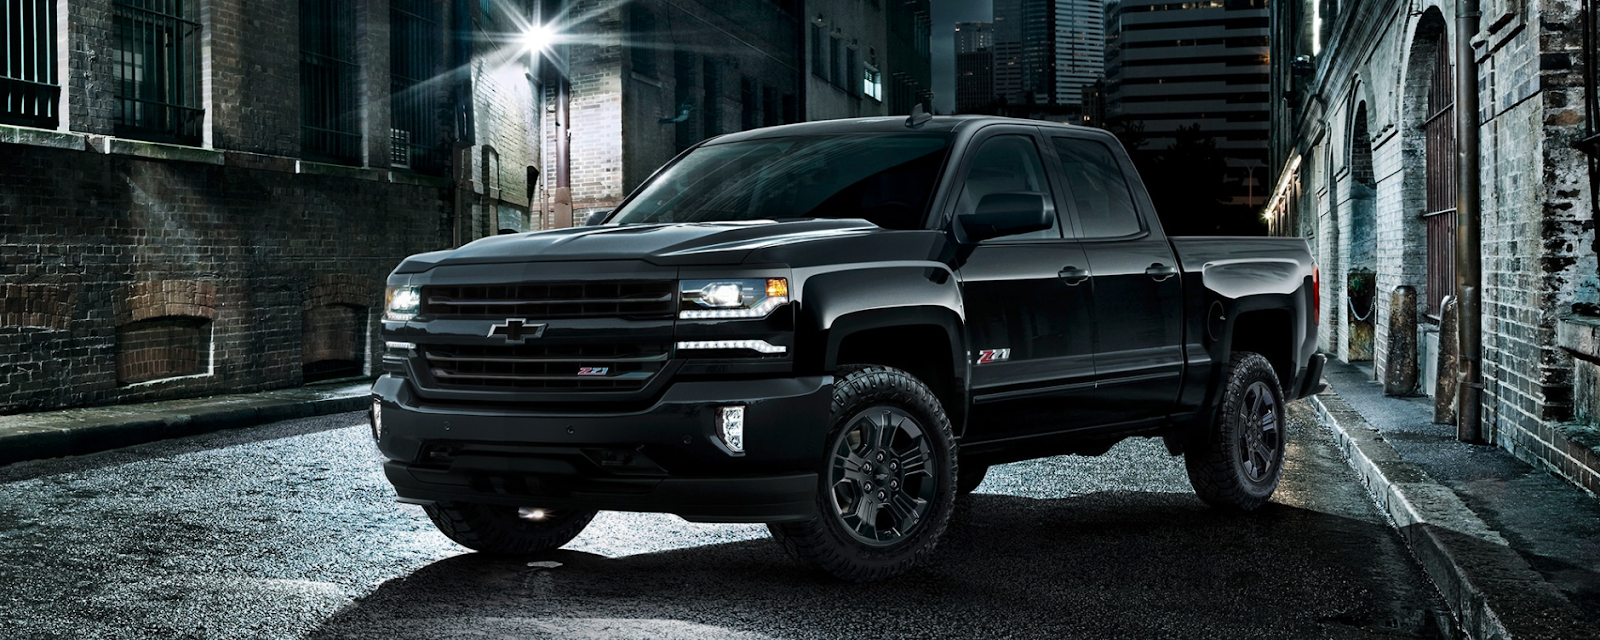 Hopefully Not Because The Midnight Edition Silverado Is A Sight To Behold All Black Everything Design Demands Your Attention And With Z71